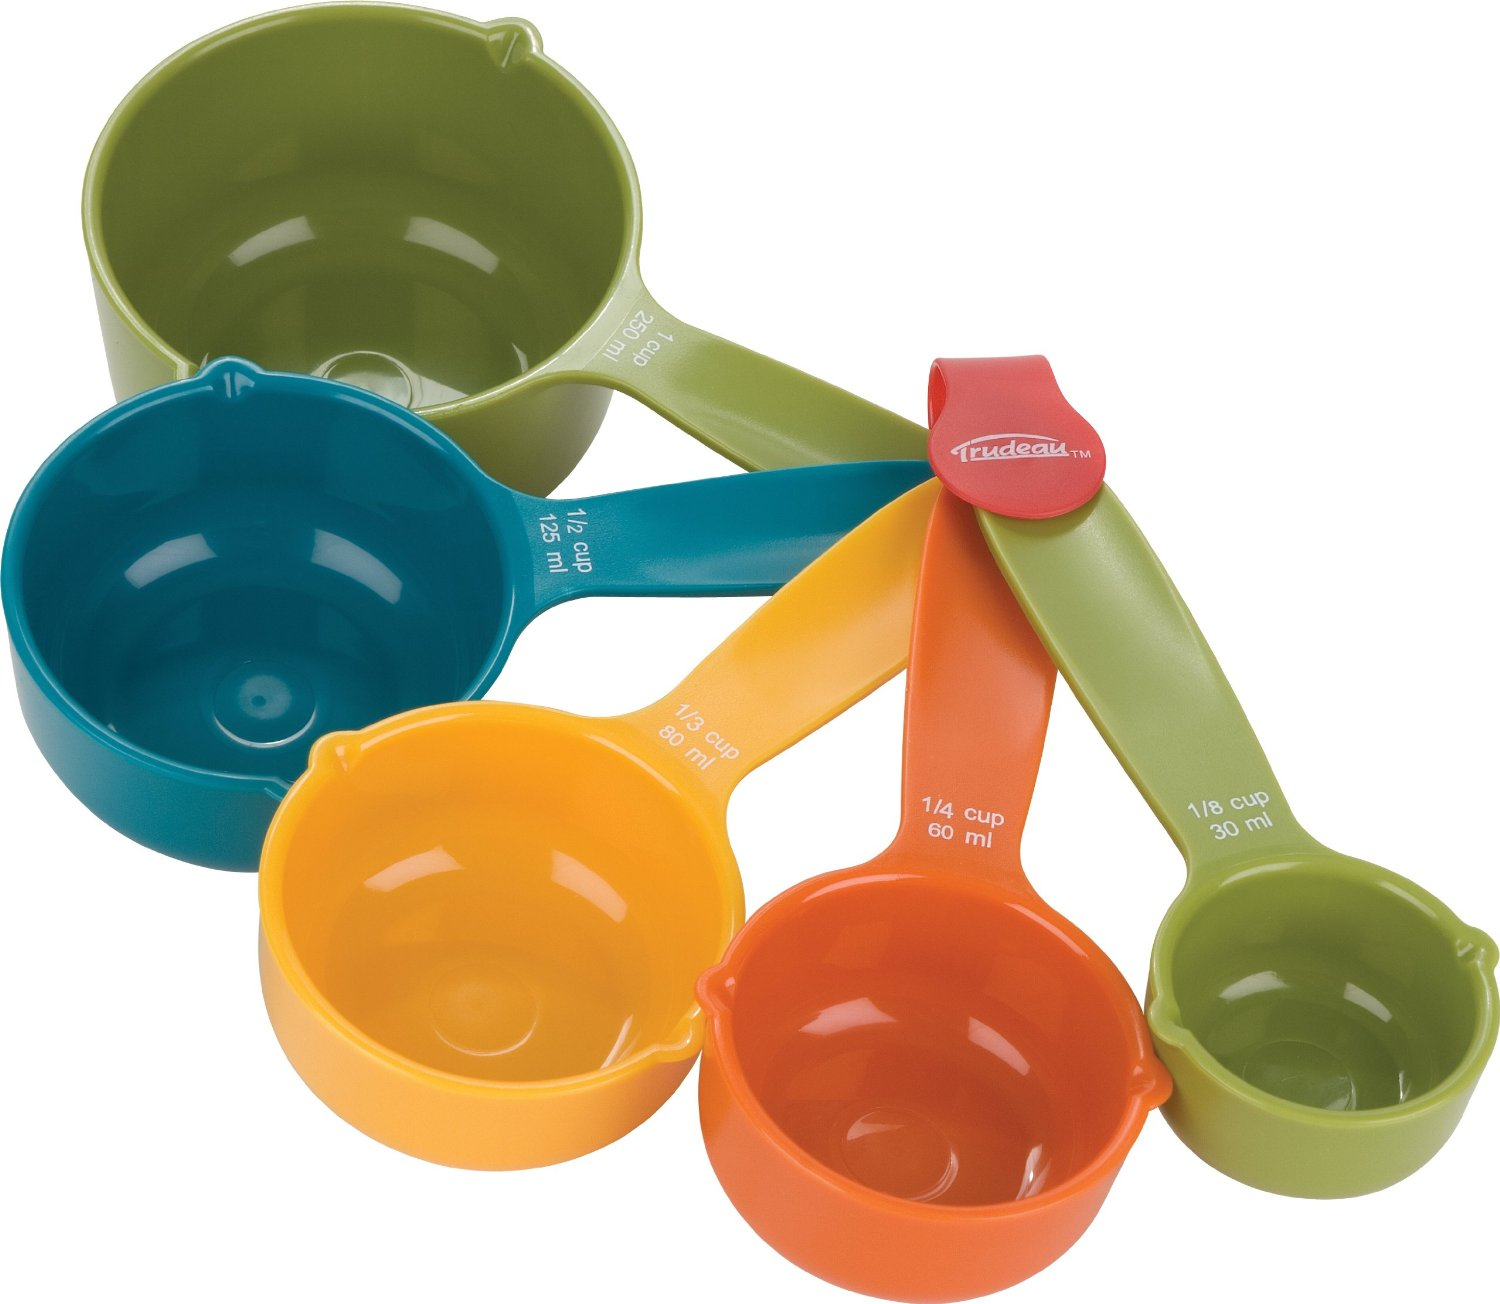 Turtle Design And Common Design Of Measuring Cup Homesfeed